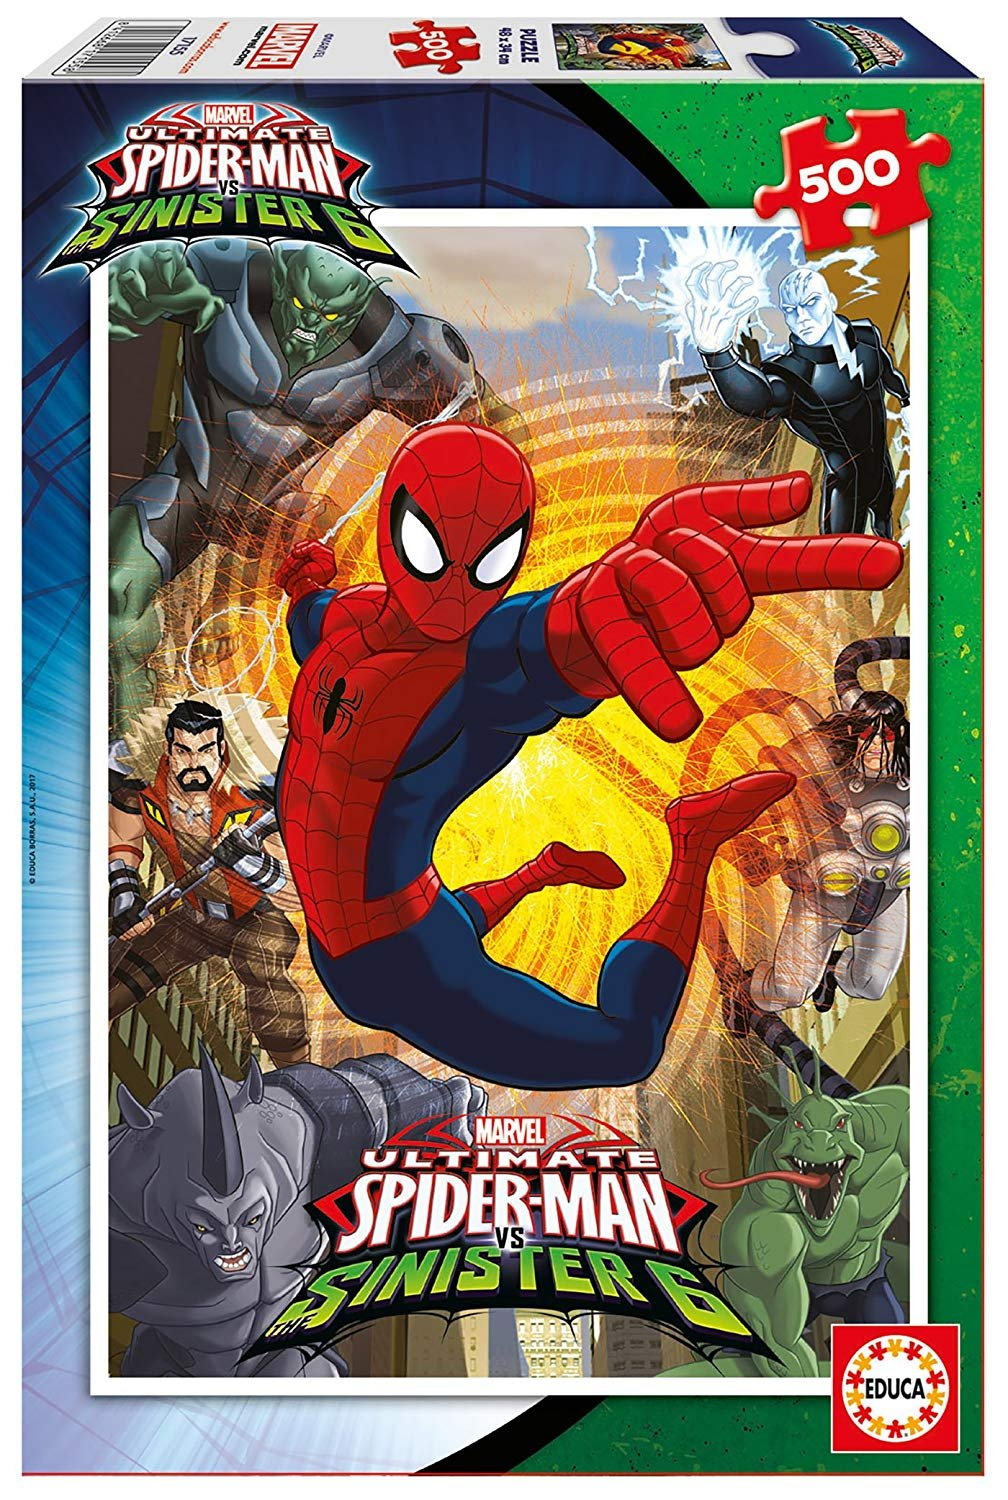 Marvel Spiderman Sinister 6 500 Piece Puzzle